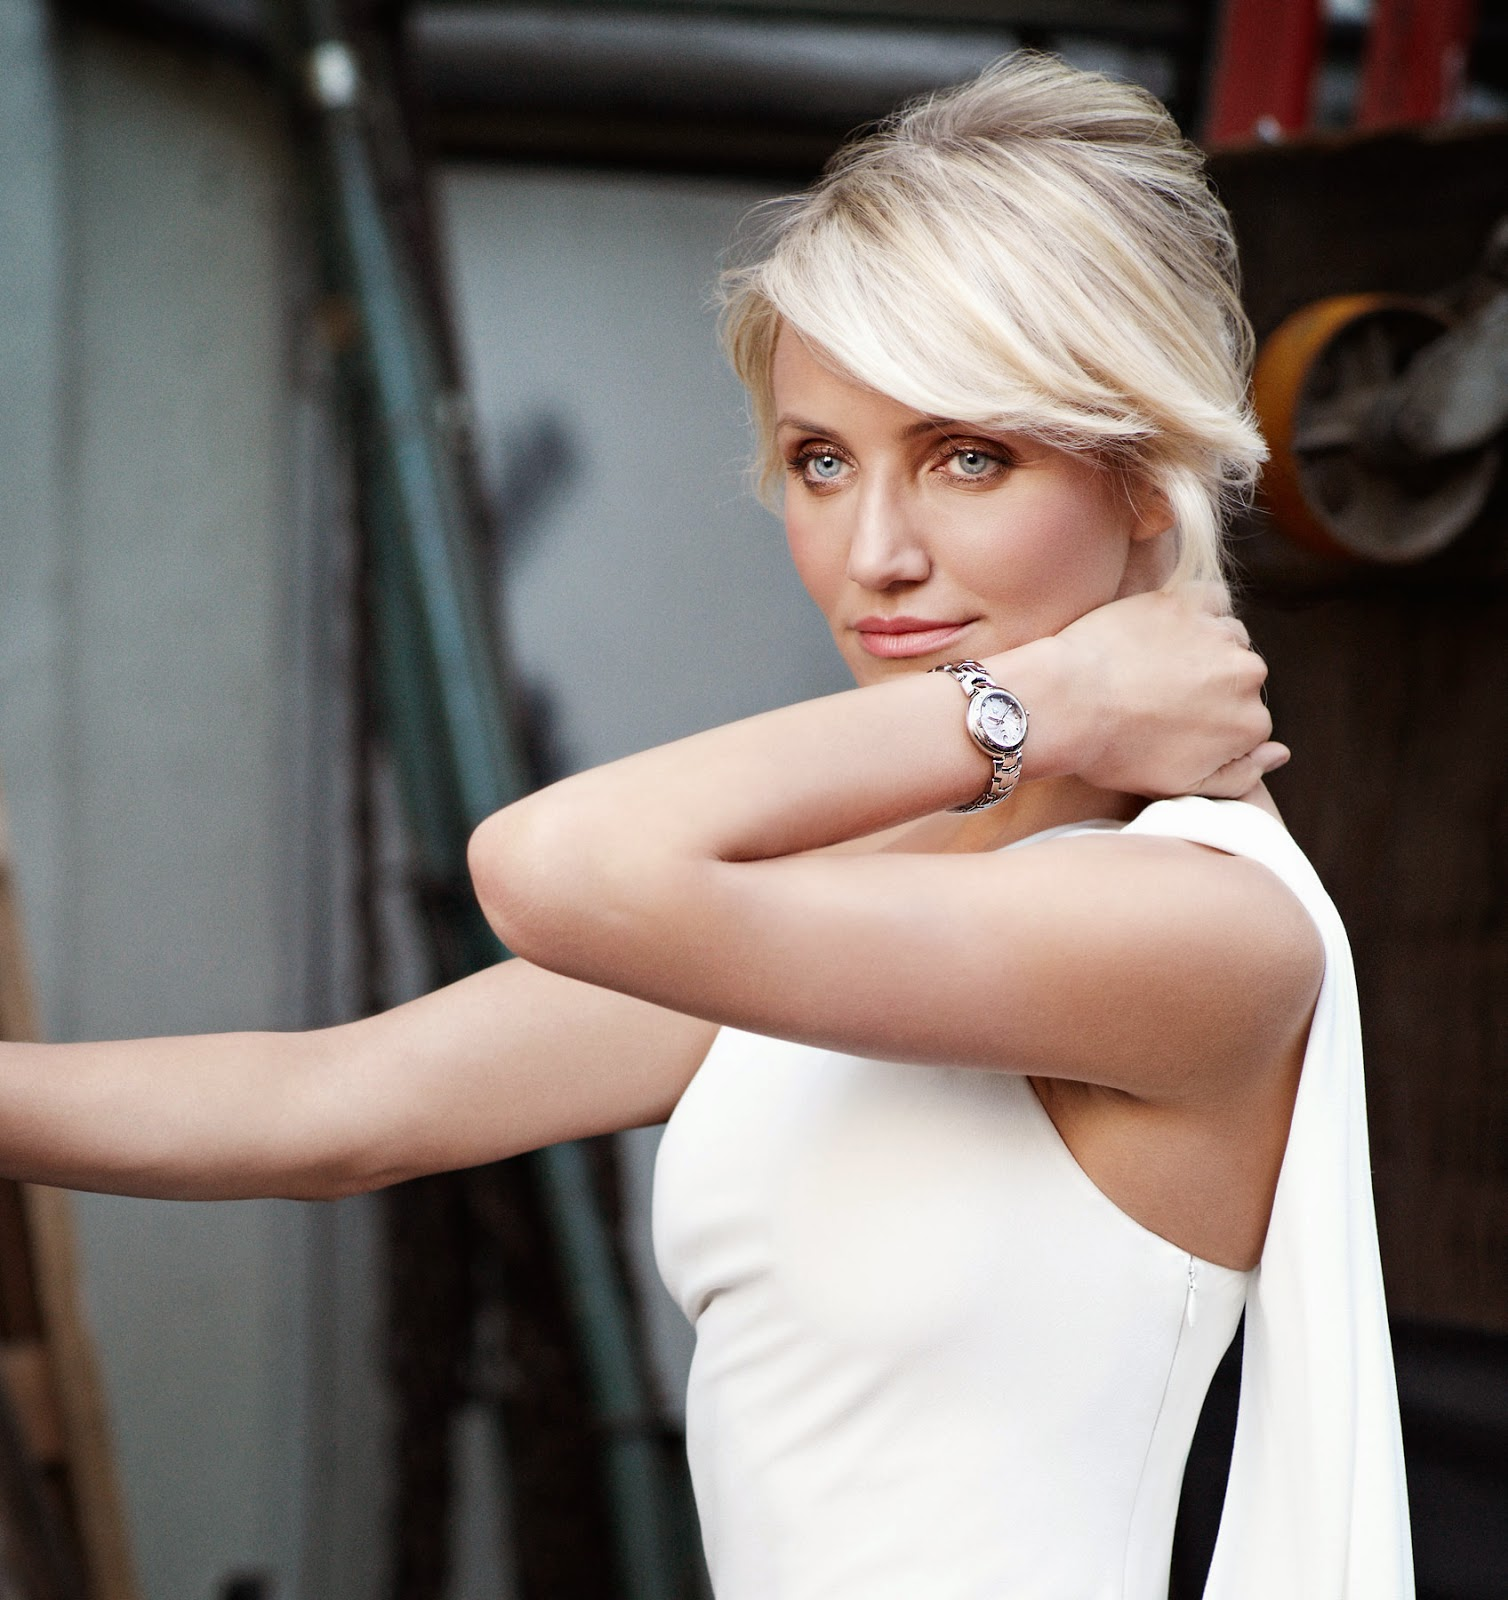 Cameron Diaz Bikini Photos Download ~ Royal Wallpapers Cameron Diaz